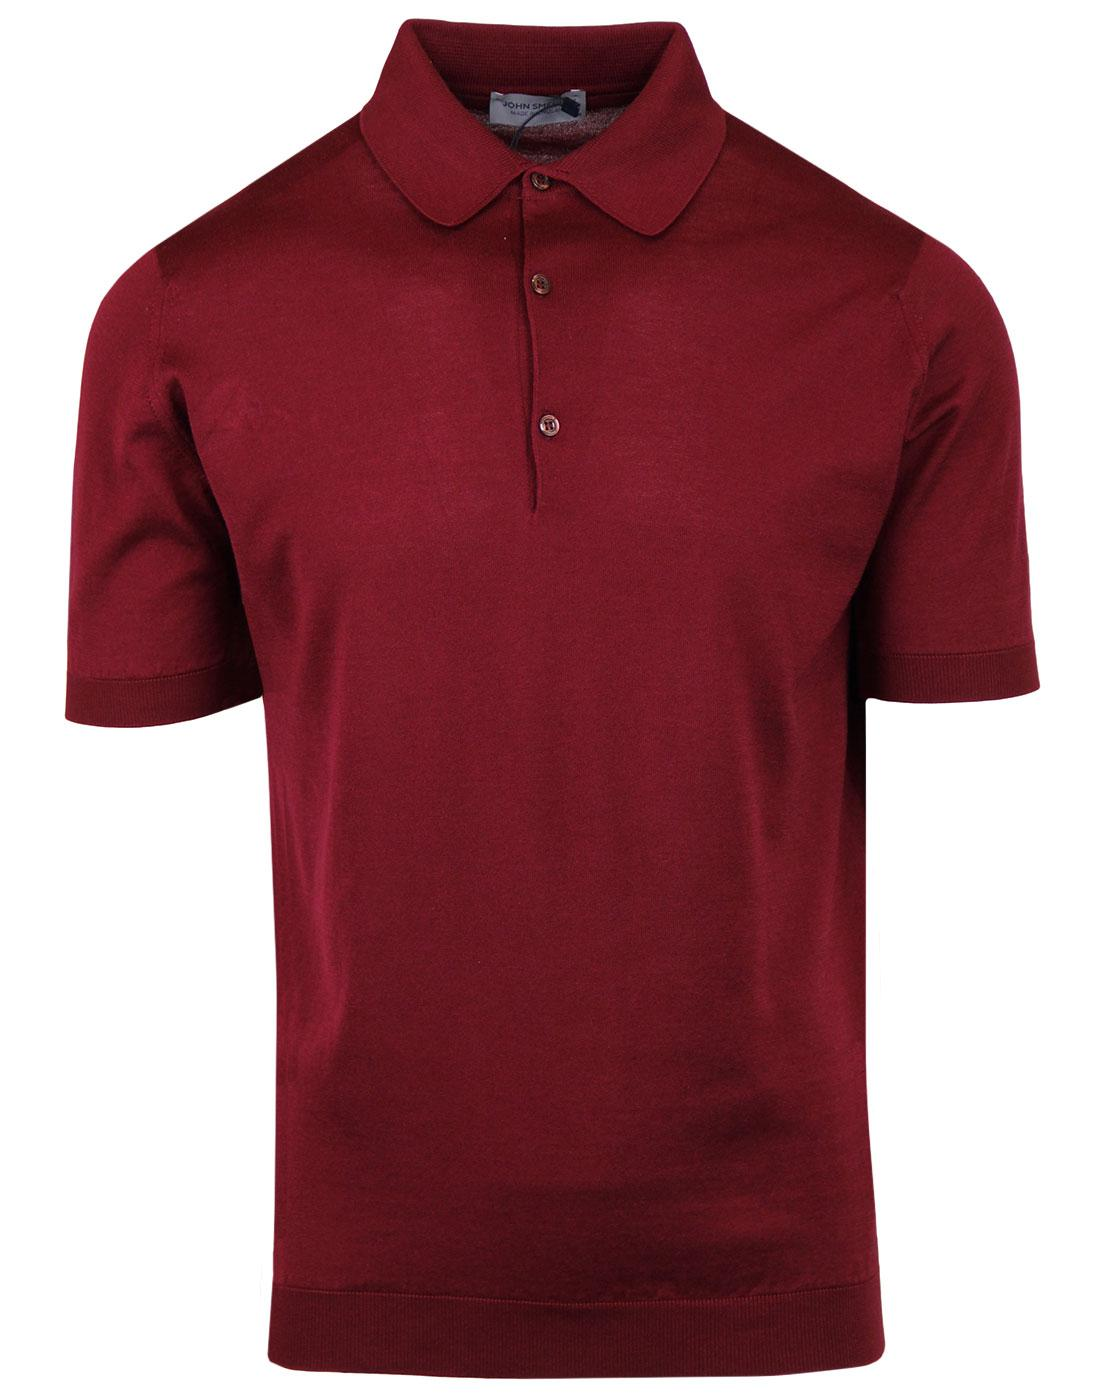 Adrian JOHN SMEDLEY Mod Knitted Polo Top BURGUNDY